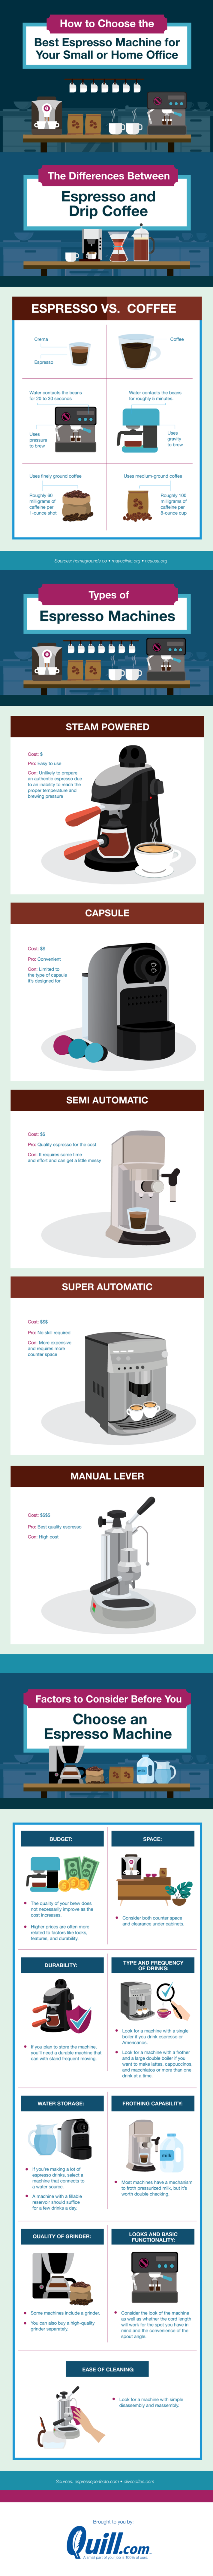 How to choose the best espresso machine for your small or home office